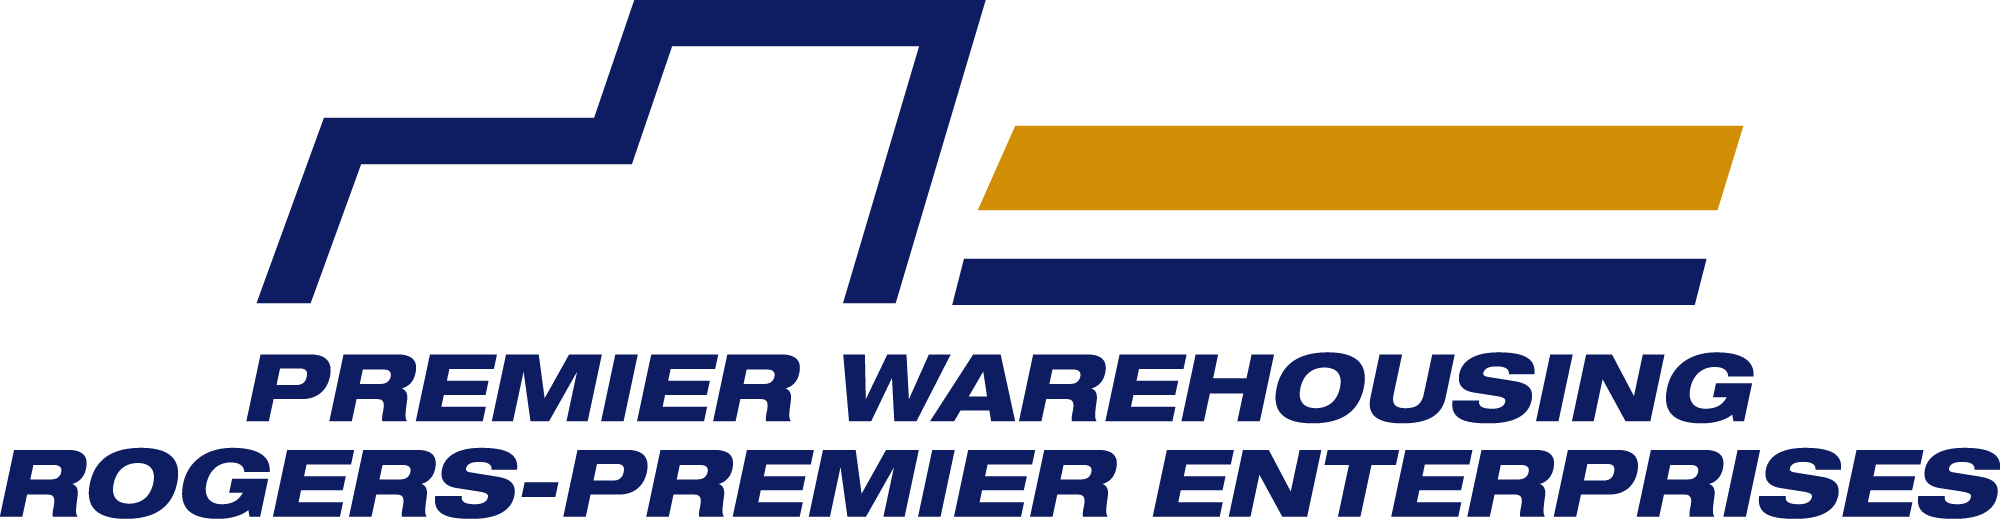 Premier Warehousing, Rogers-Premier Enterprises